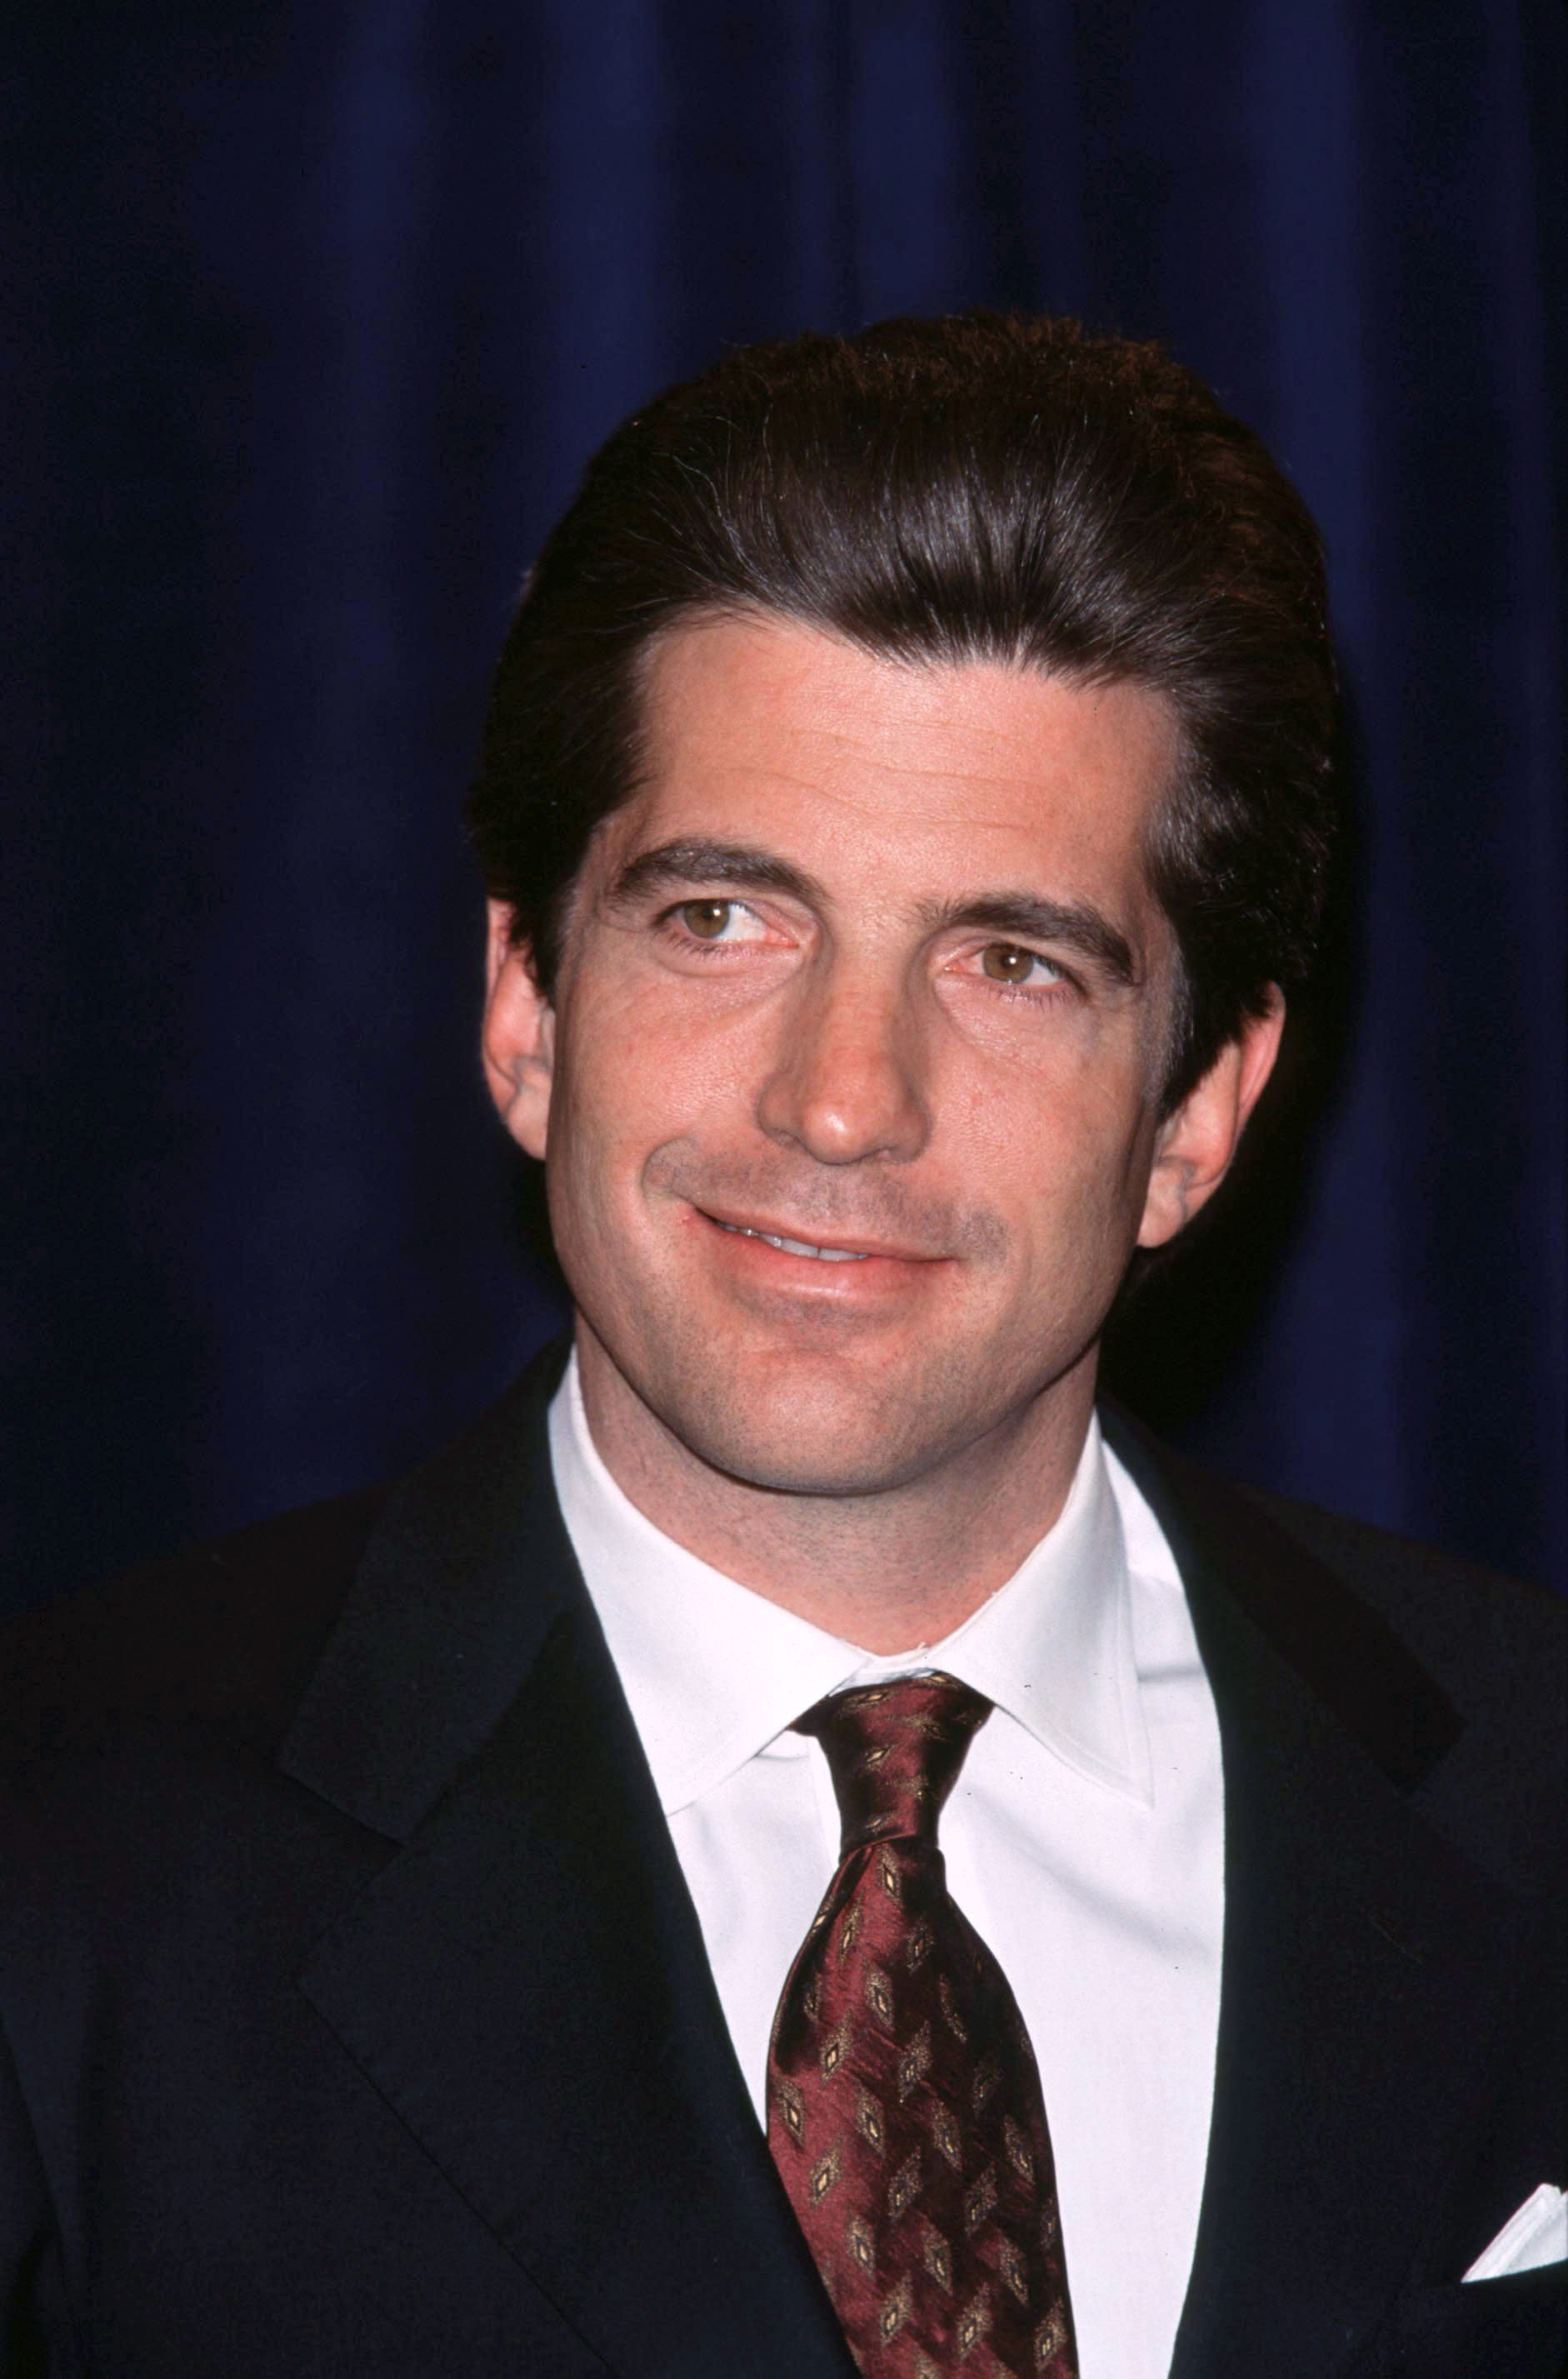 John F. Kennedy Jr. at the Jackie Robinson Foundation dinner in 1999. | Source: Getty Images